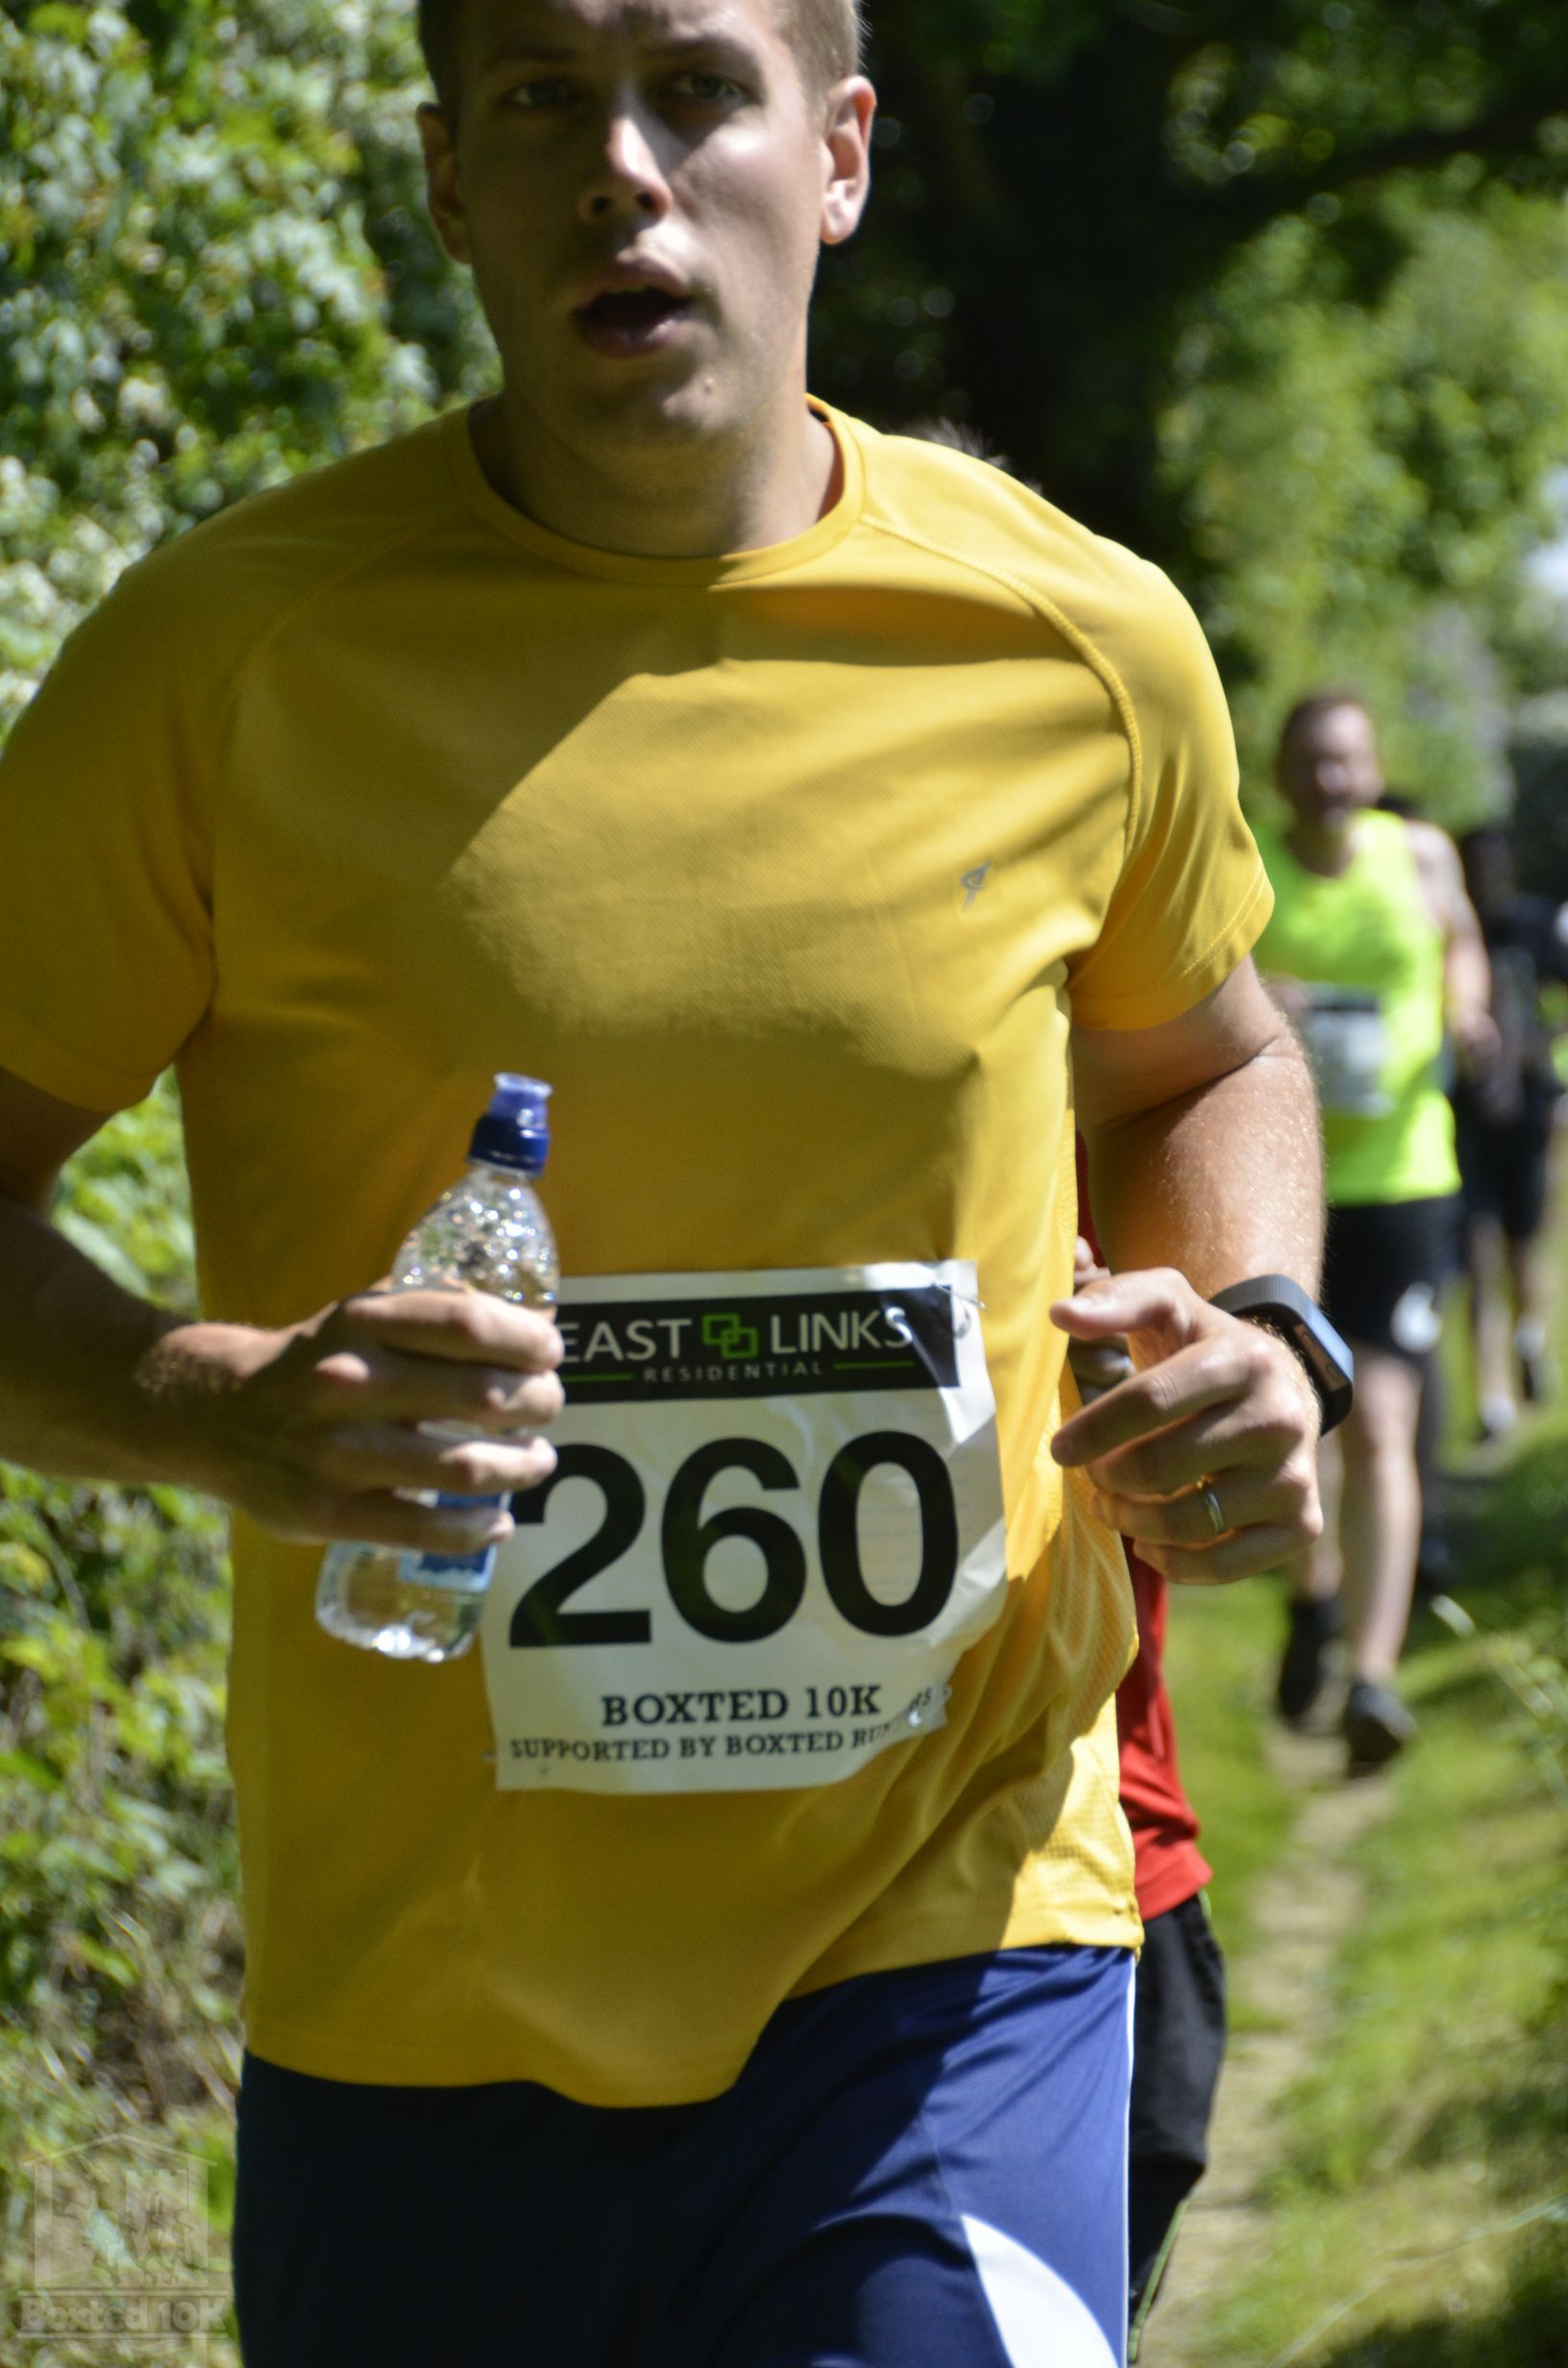 Boxted10k-00284